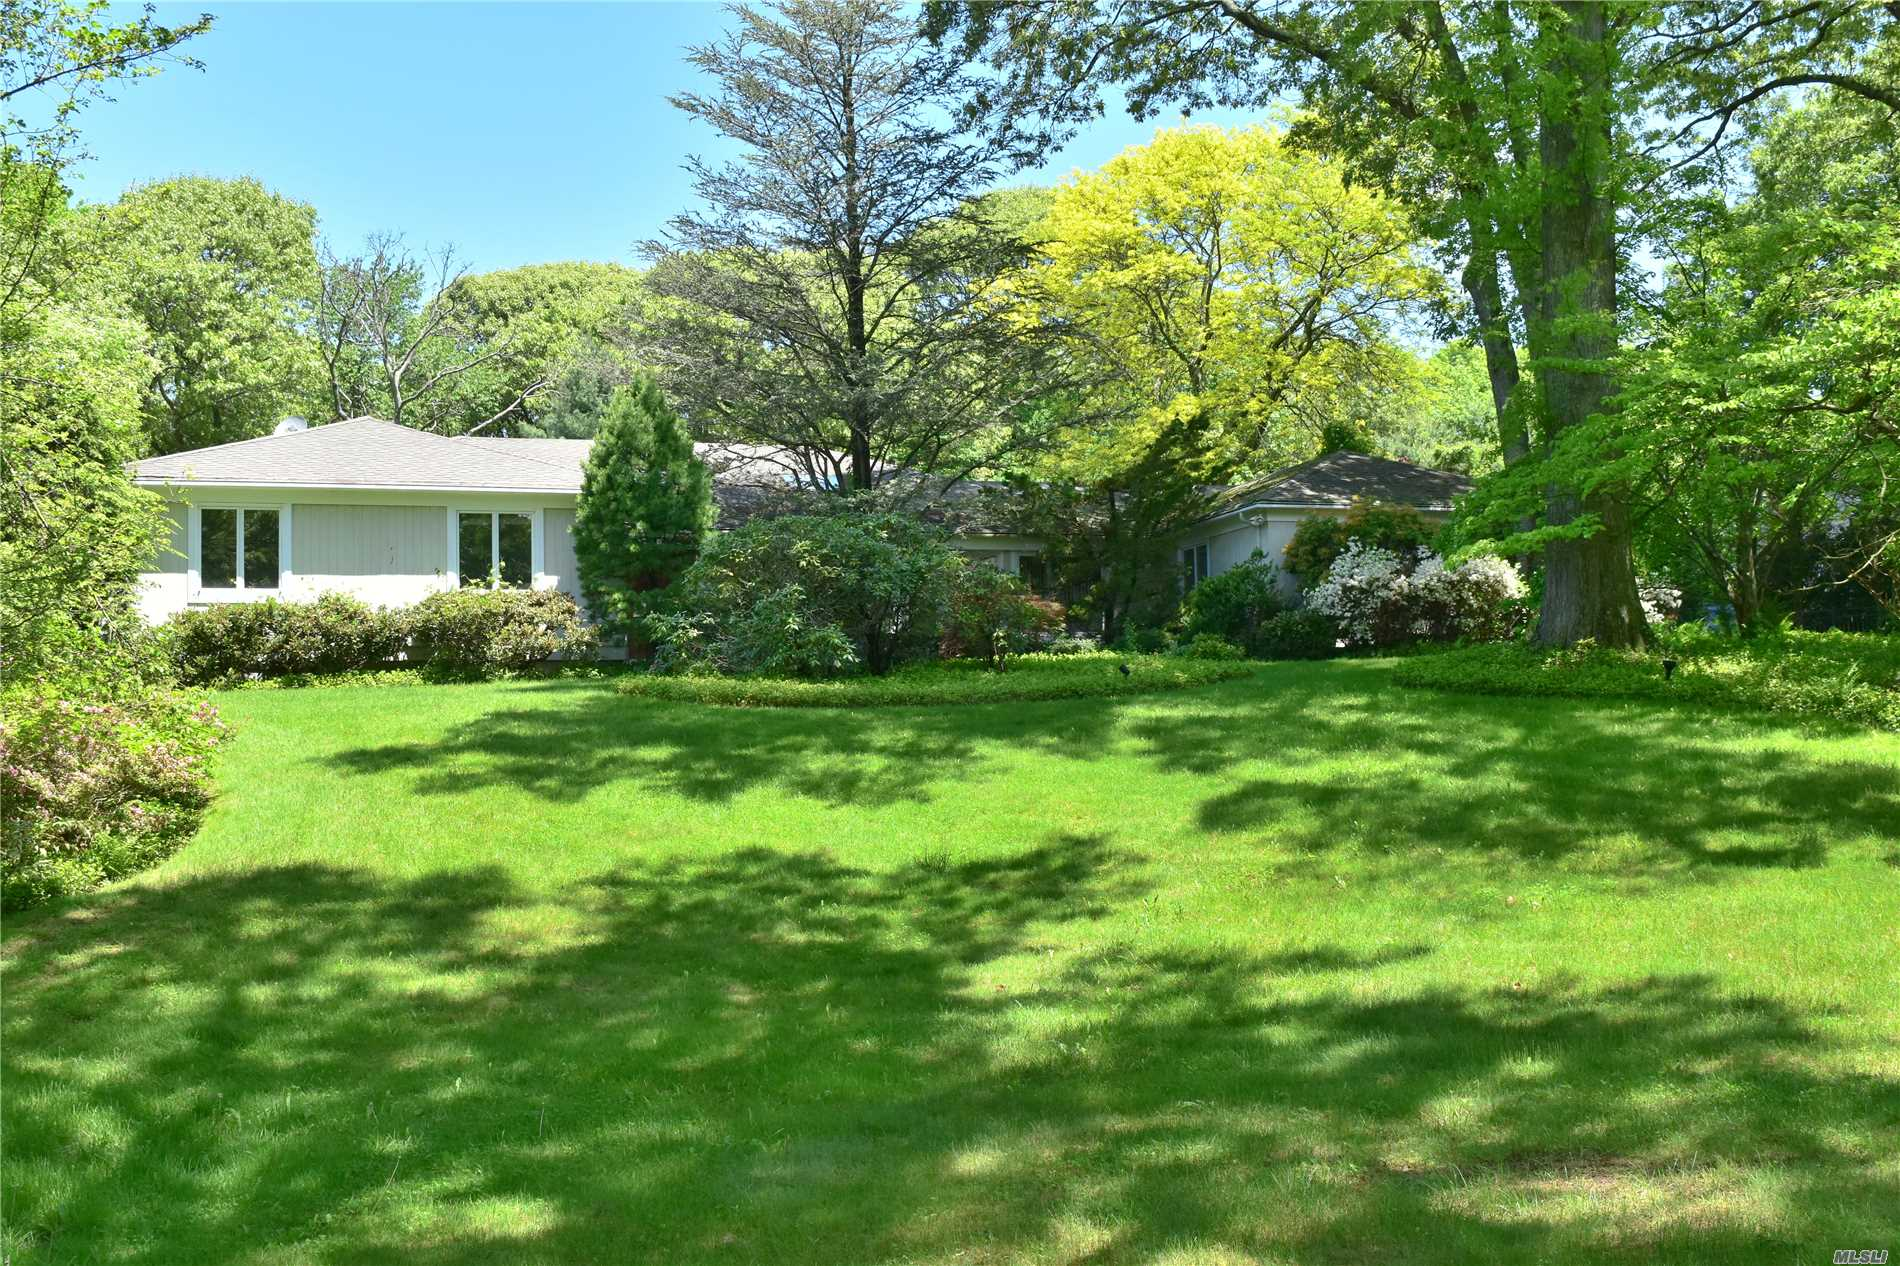 Tremendous Expanded Ranch In Perfect Location!! Set On Picturesque Professionally Landscaped Grounds W/ In-Ground Pool & Waterfall! Tons Of Possibilities! Subject To Third Party Approval!